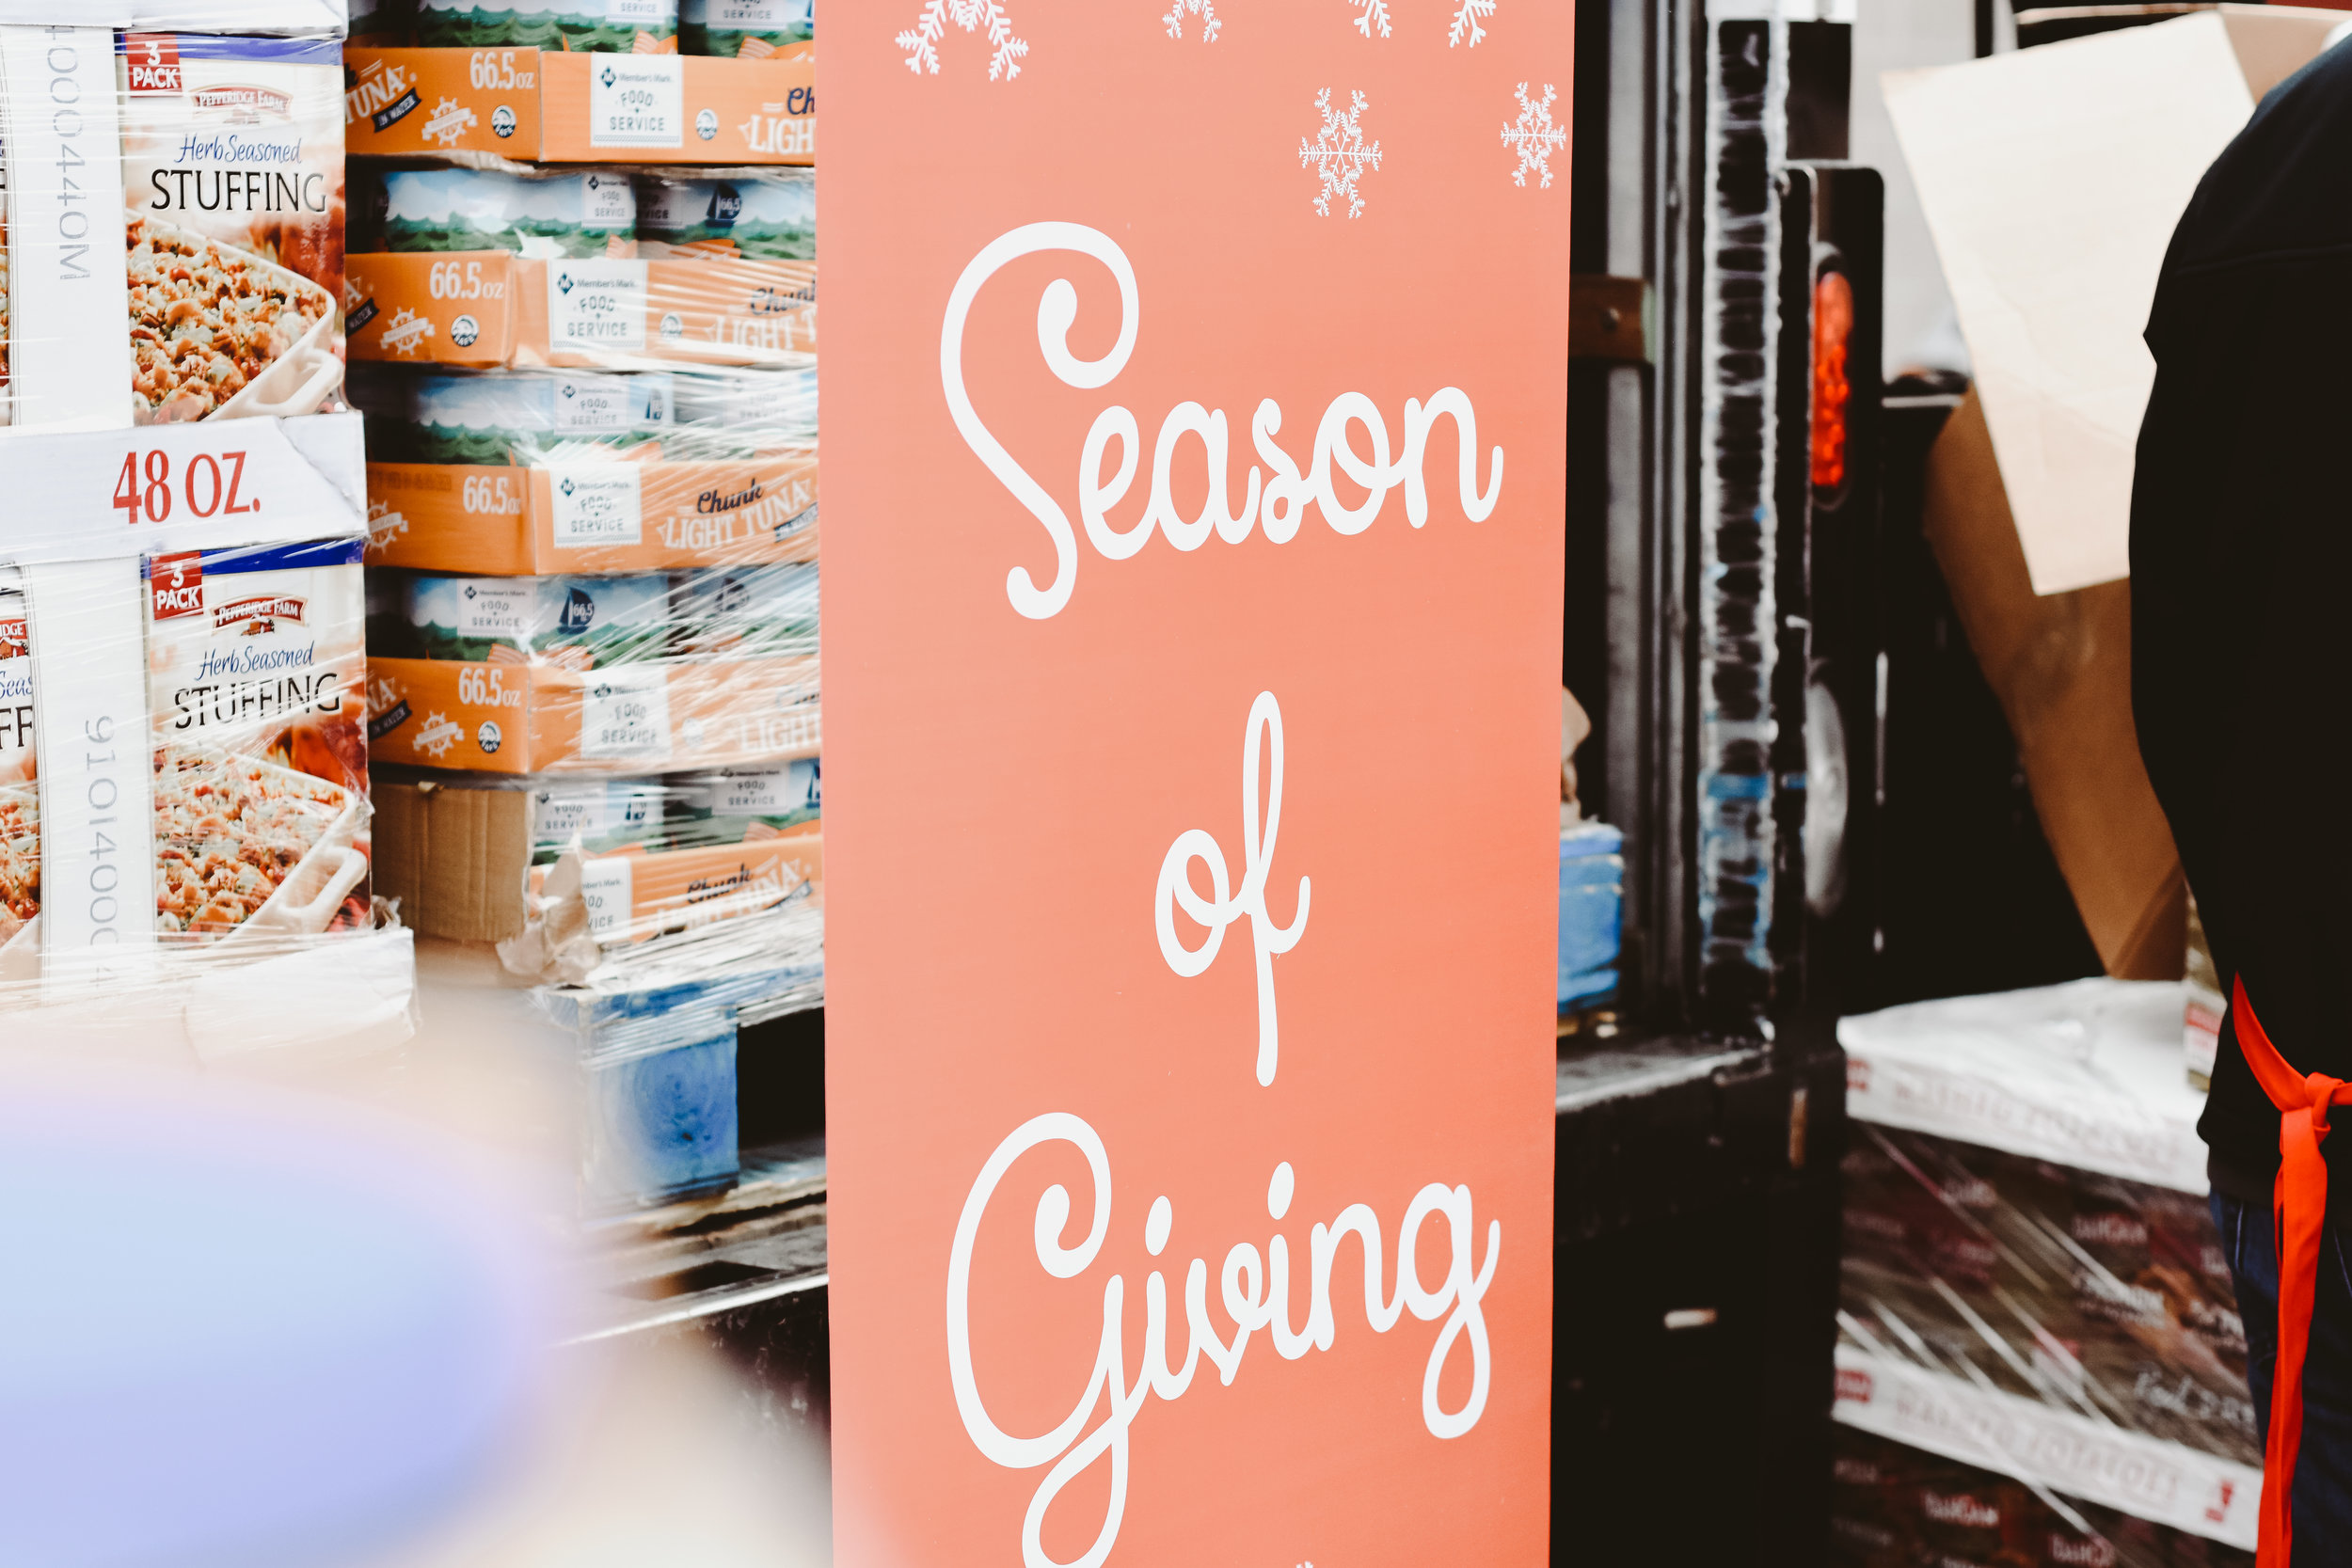 Donate this season of giving with Toyota